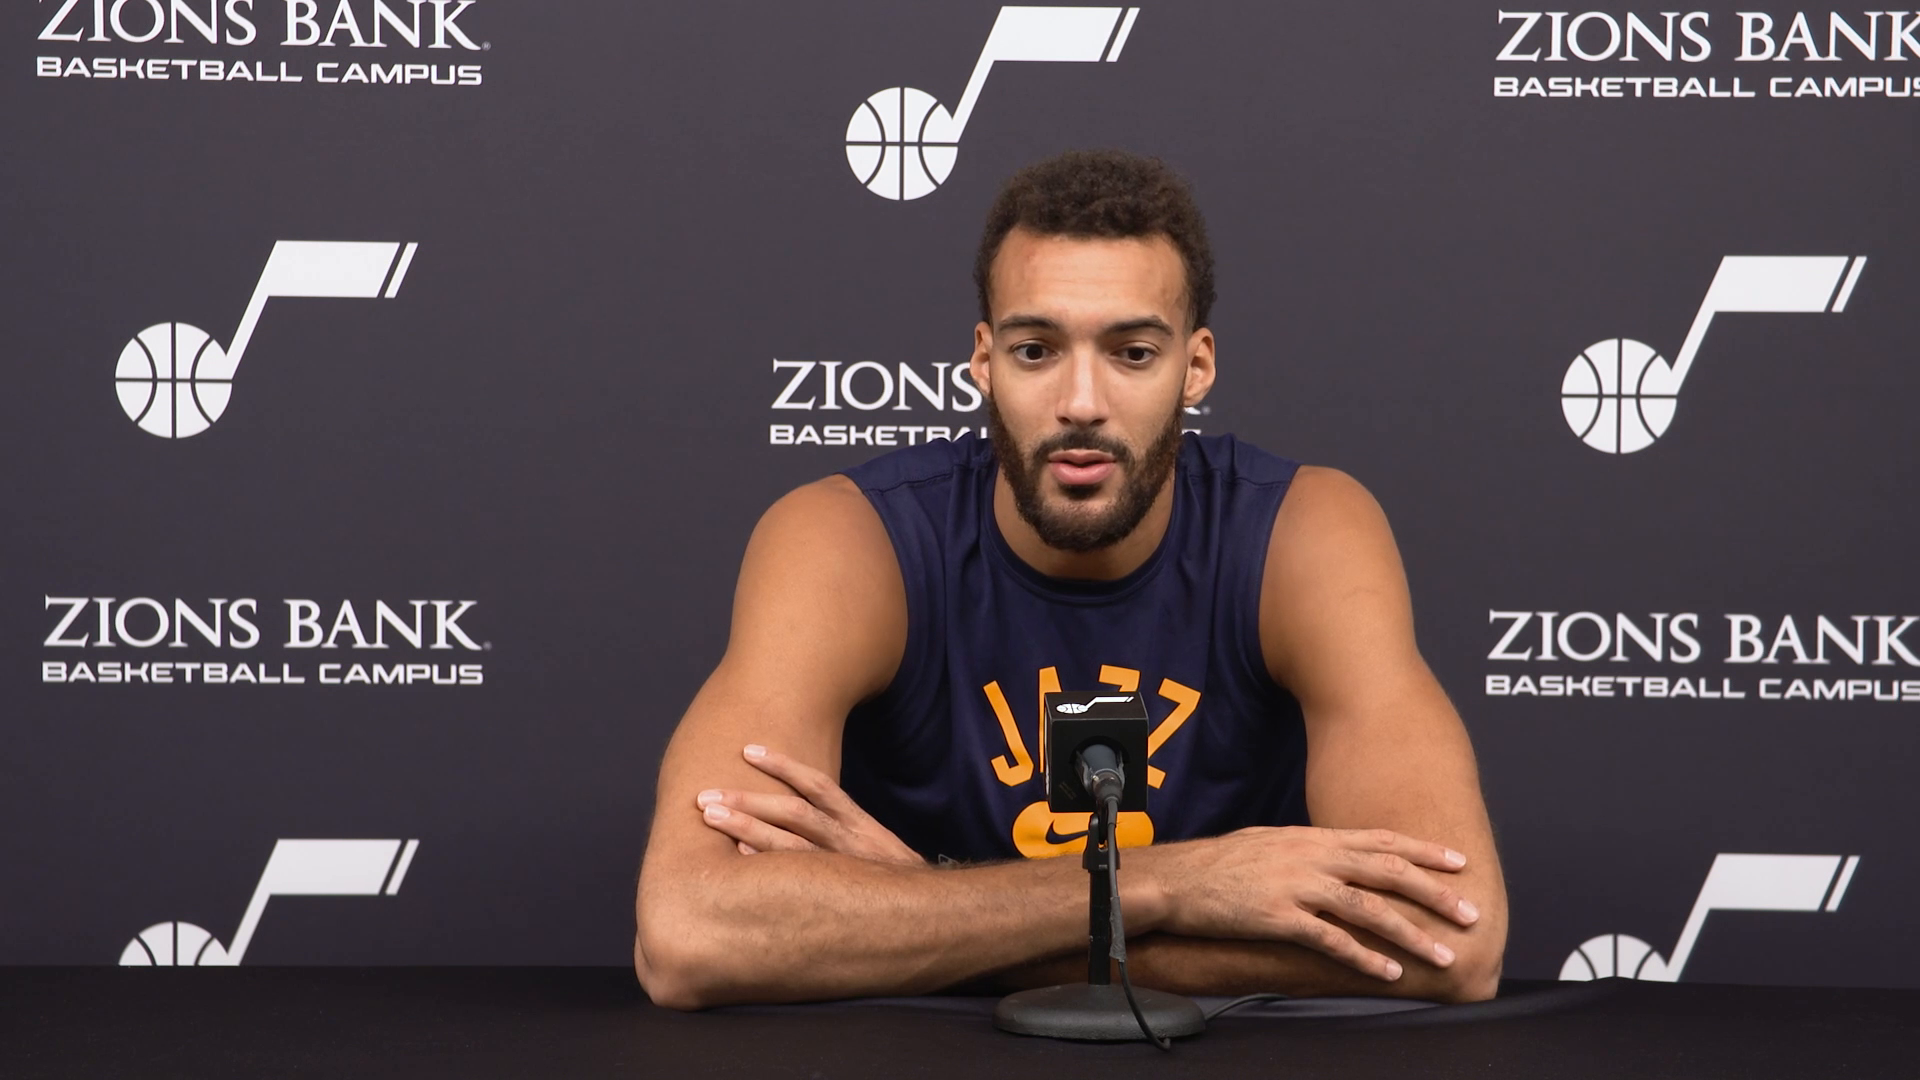 Practice 10.19—Rudy Gobert enters his 9th season and still looking to improve